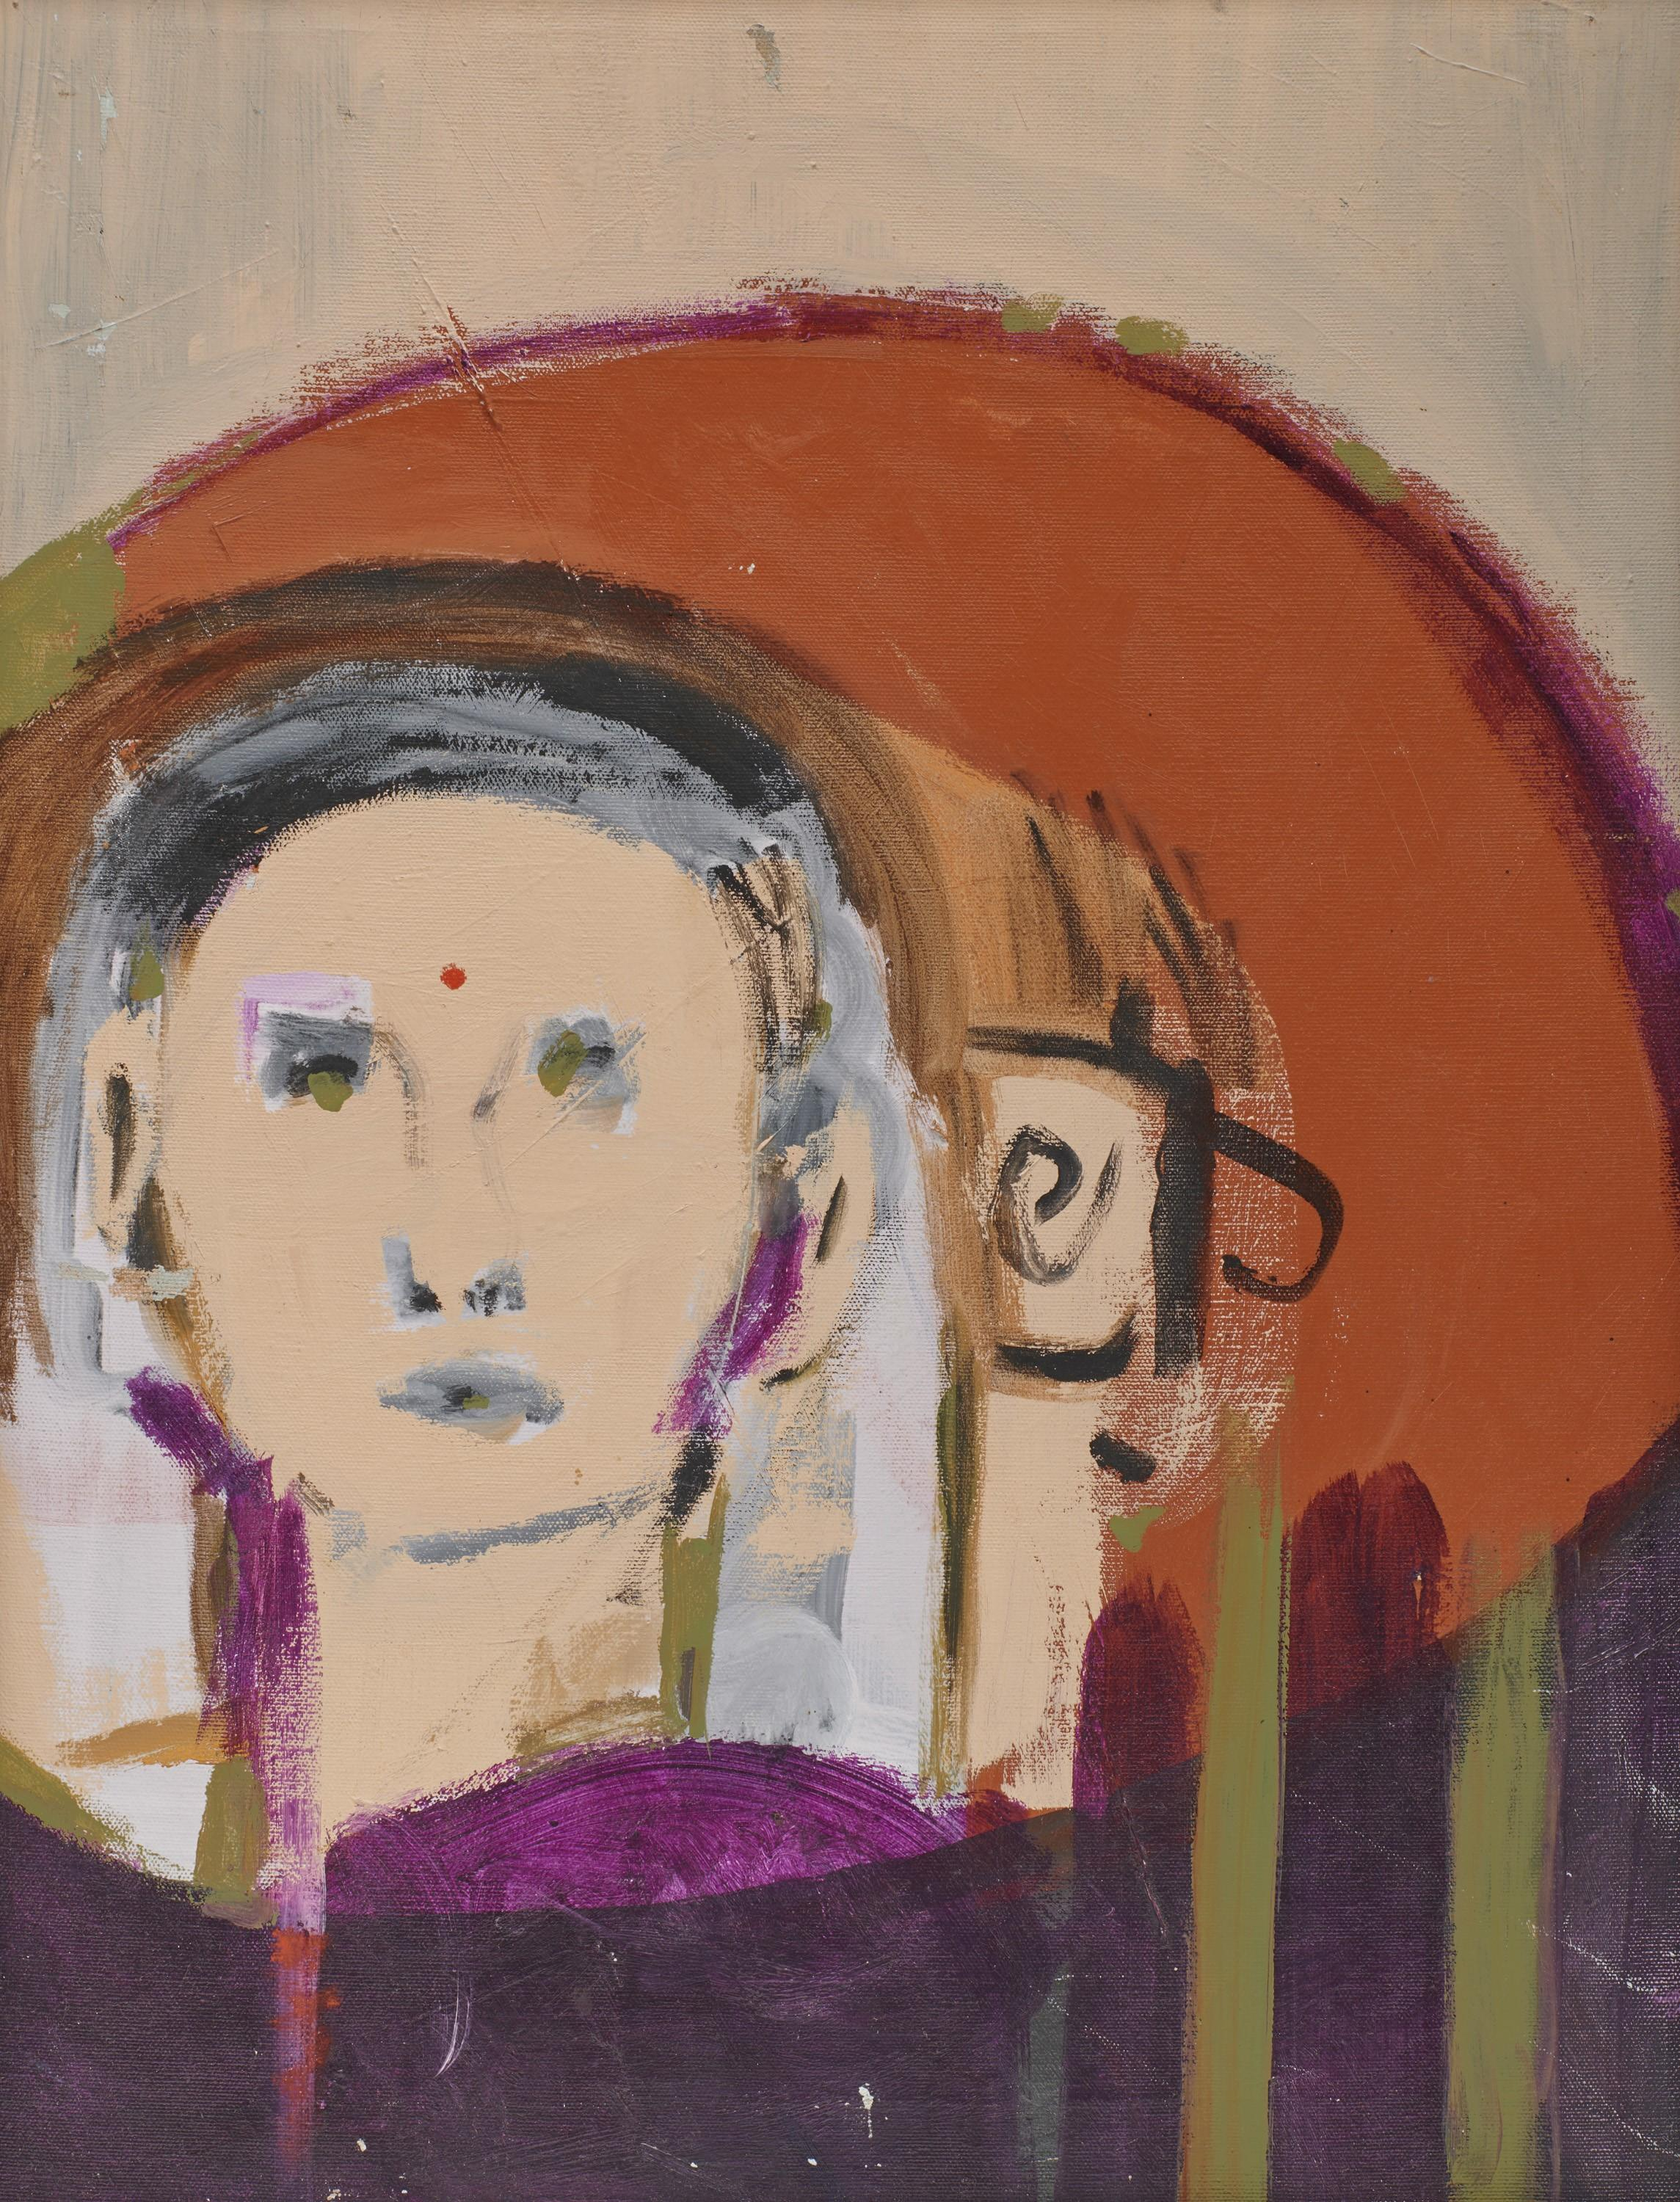 WILLIAM THEOPHILUS BROWN, (American, 1919-2012), Bindi, 1968, oil on canvas, 24 x 18 in., frame: 25 x 19 in.